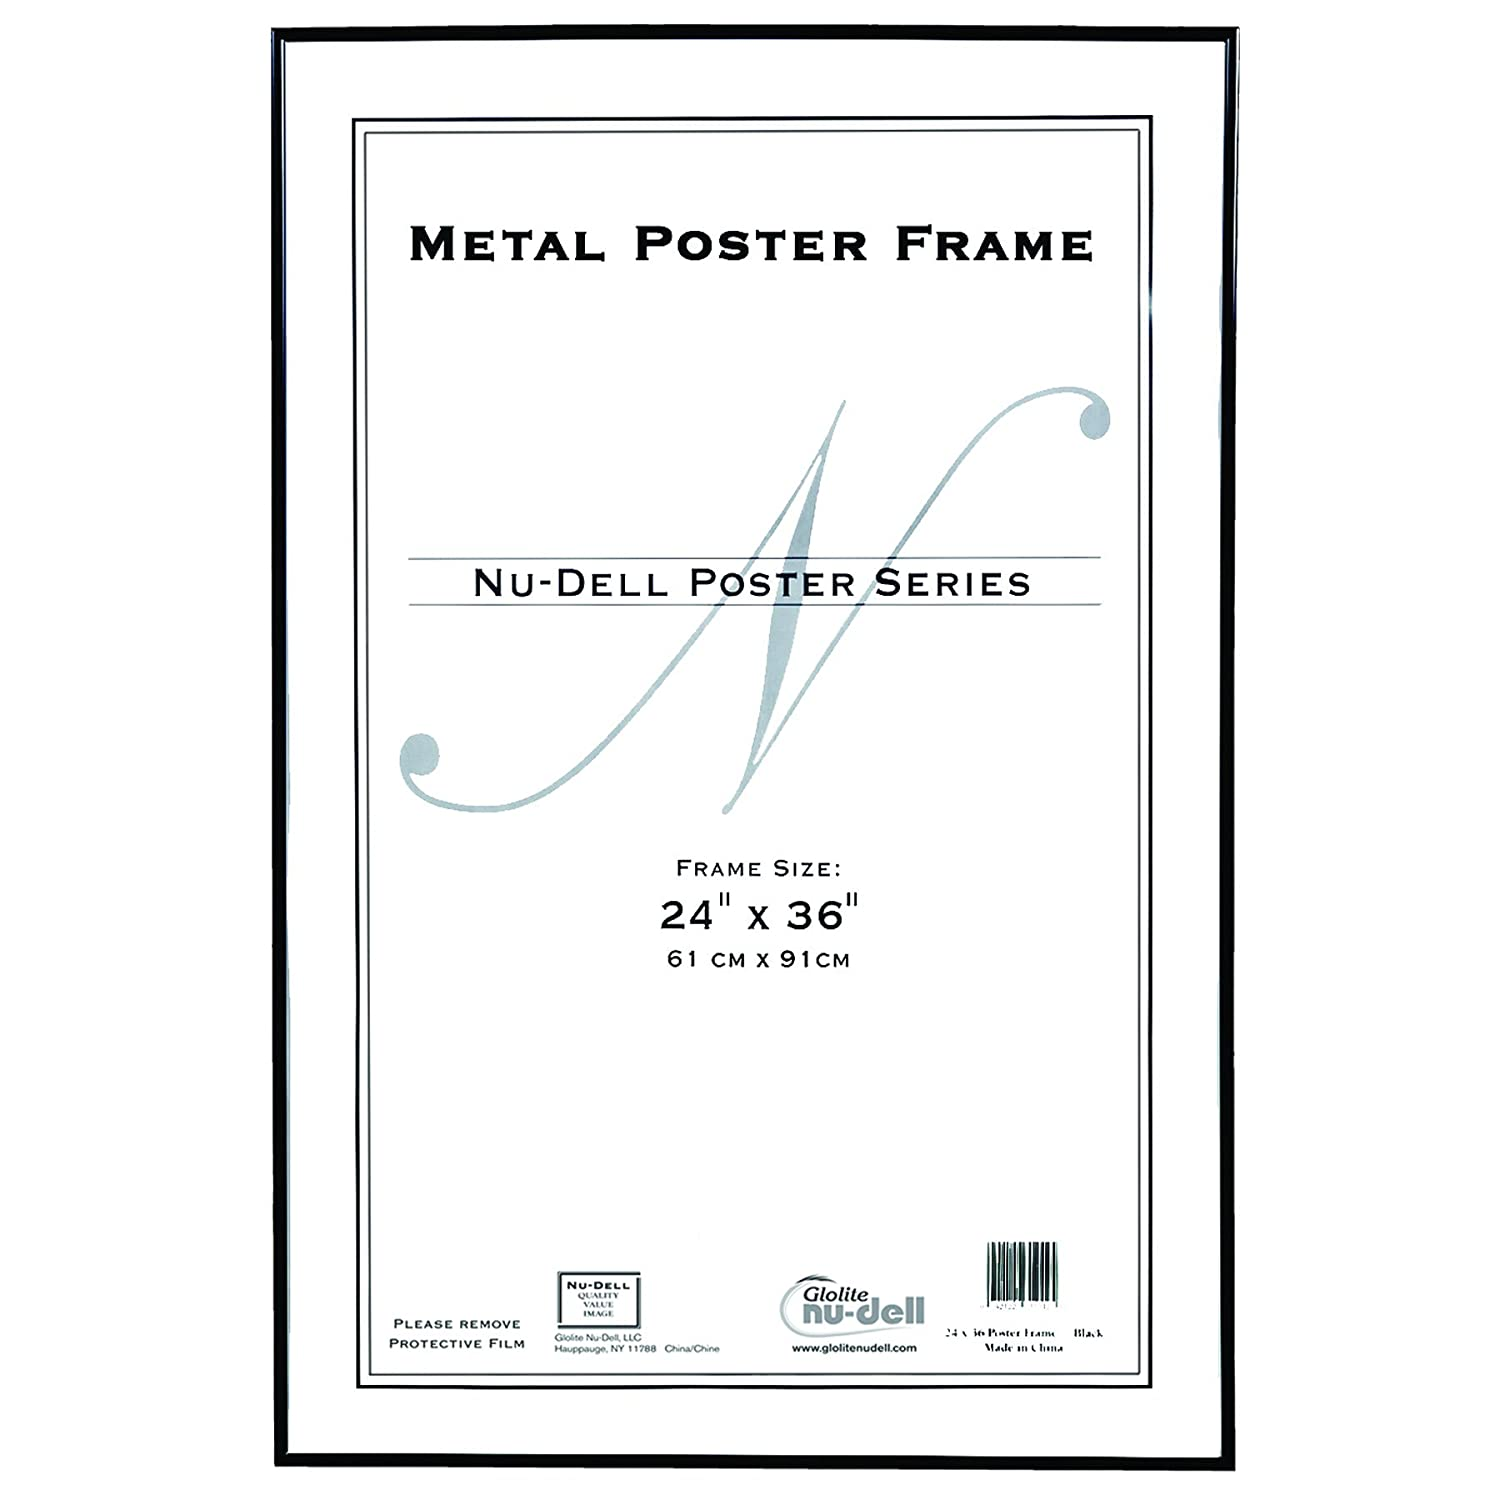 poster frame size - Fashion.stellaconstance.co